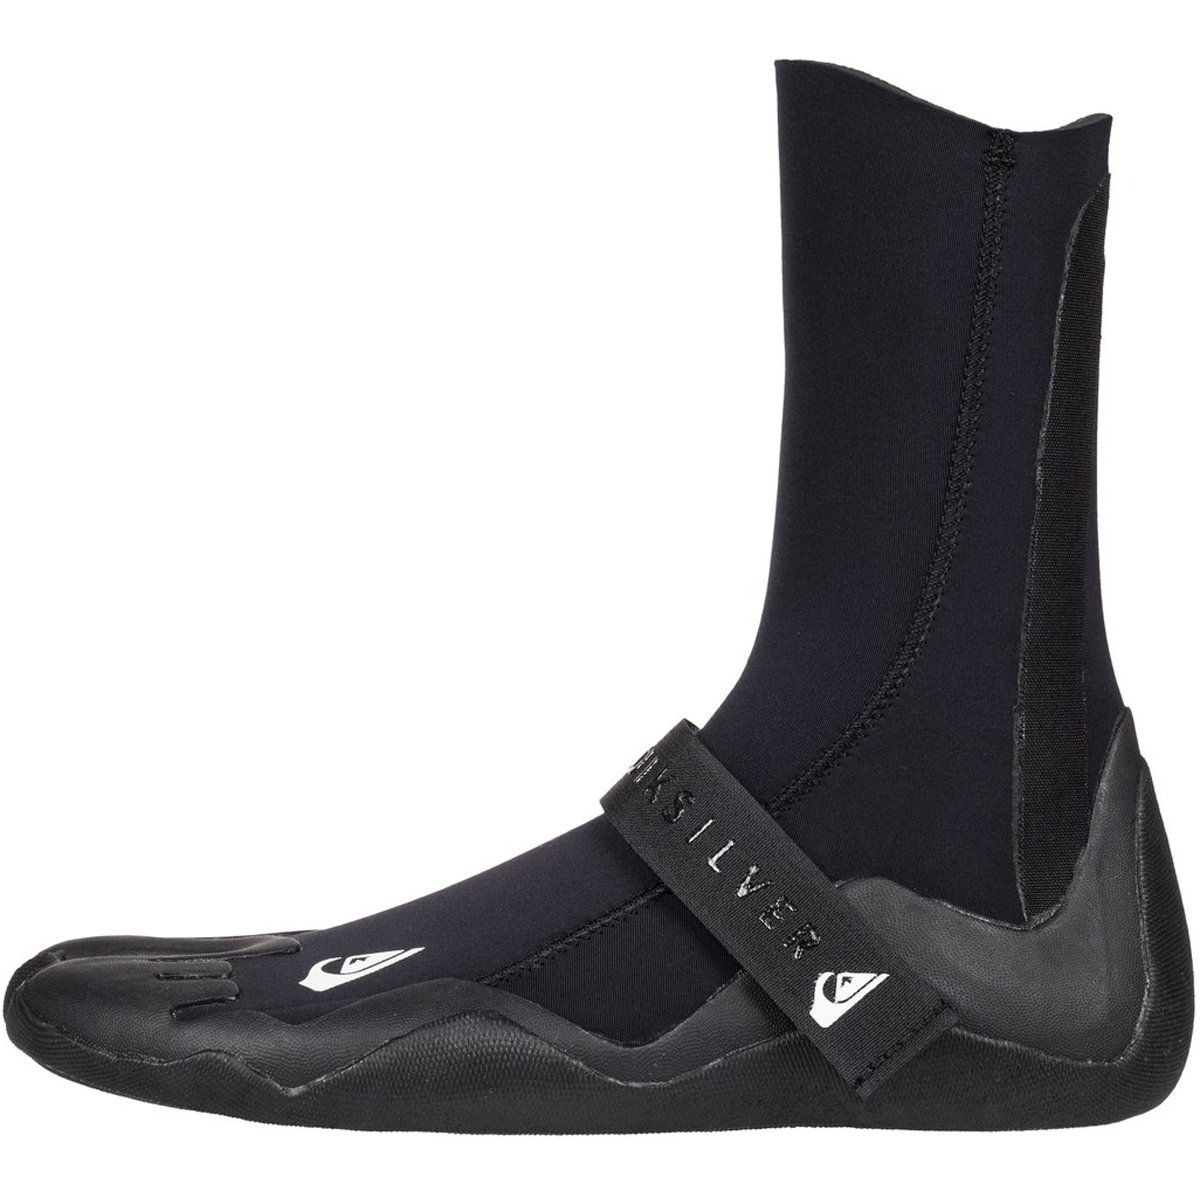 Quiksilver 3mm Syncro Split Toe Men's Watersports Boots - Black / 12 by Quiksilver